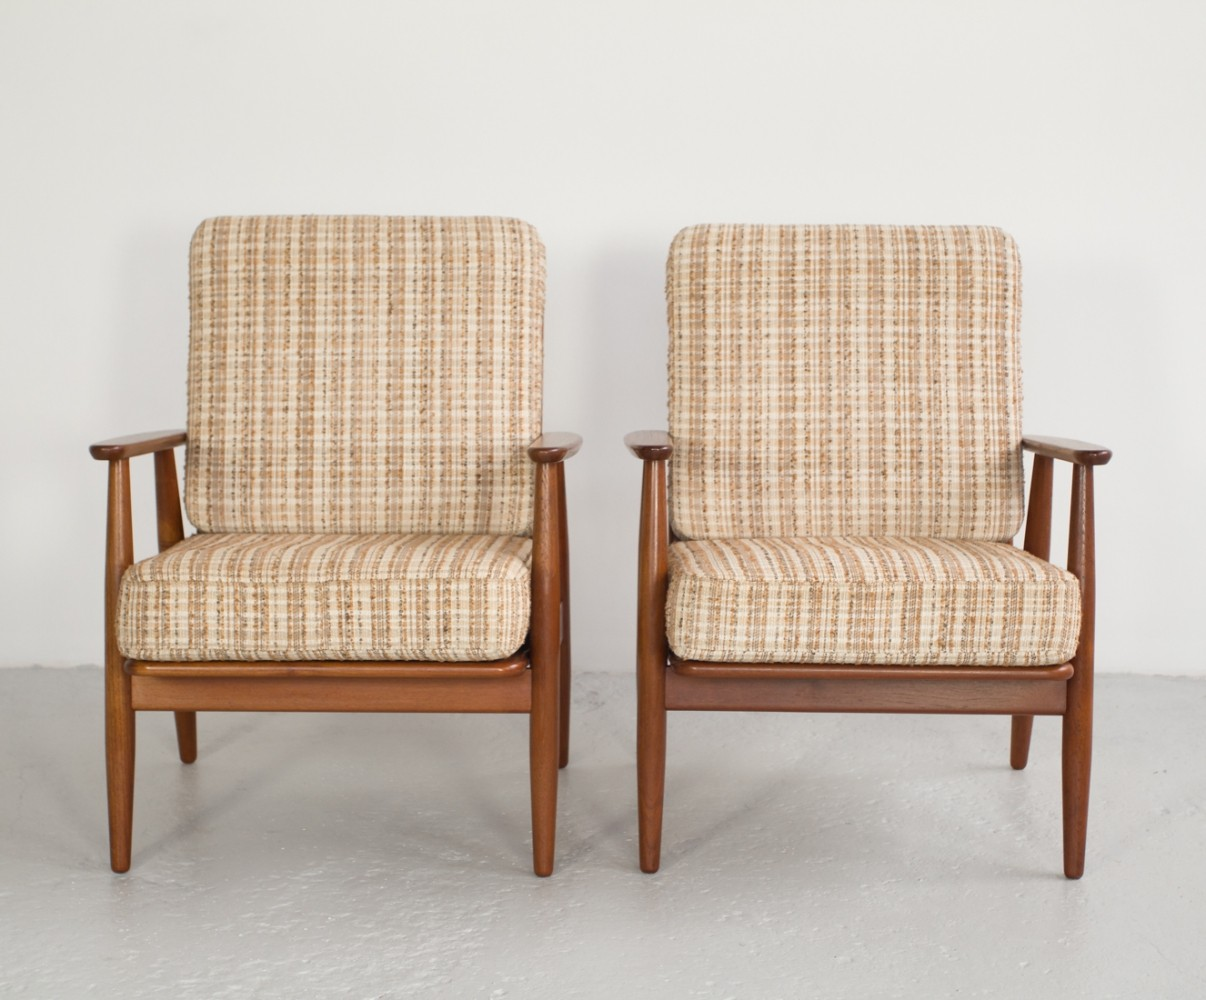 Pair of Danish easy chairs in teak, 1960s